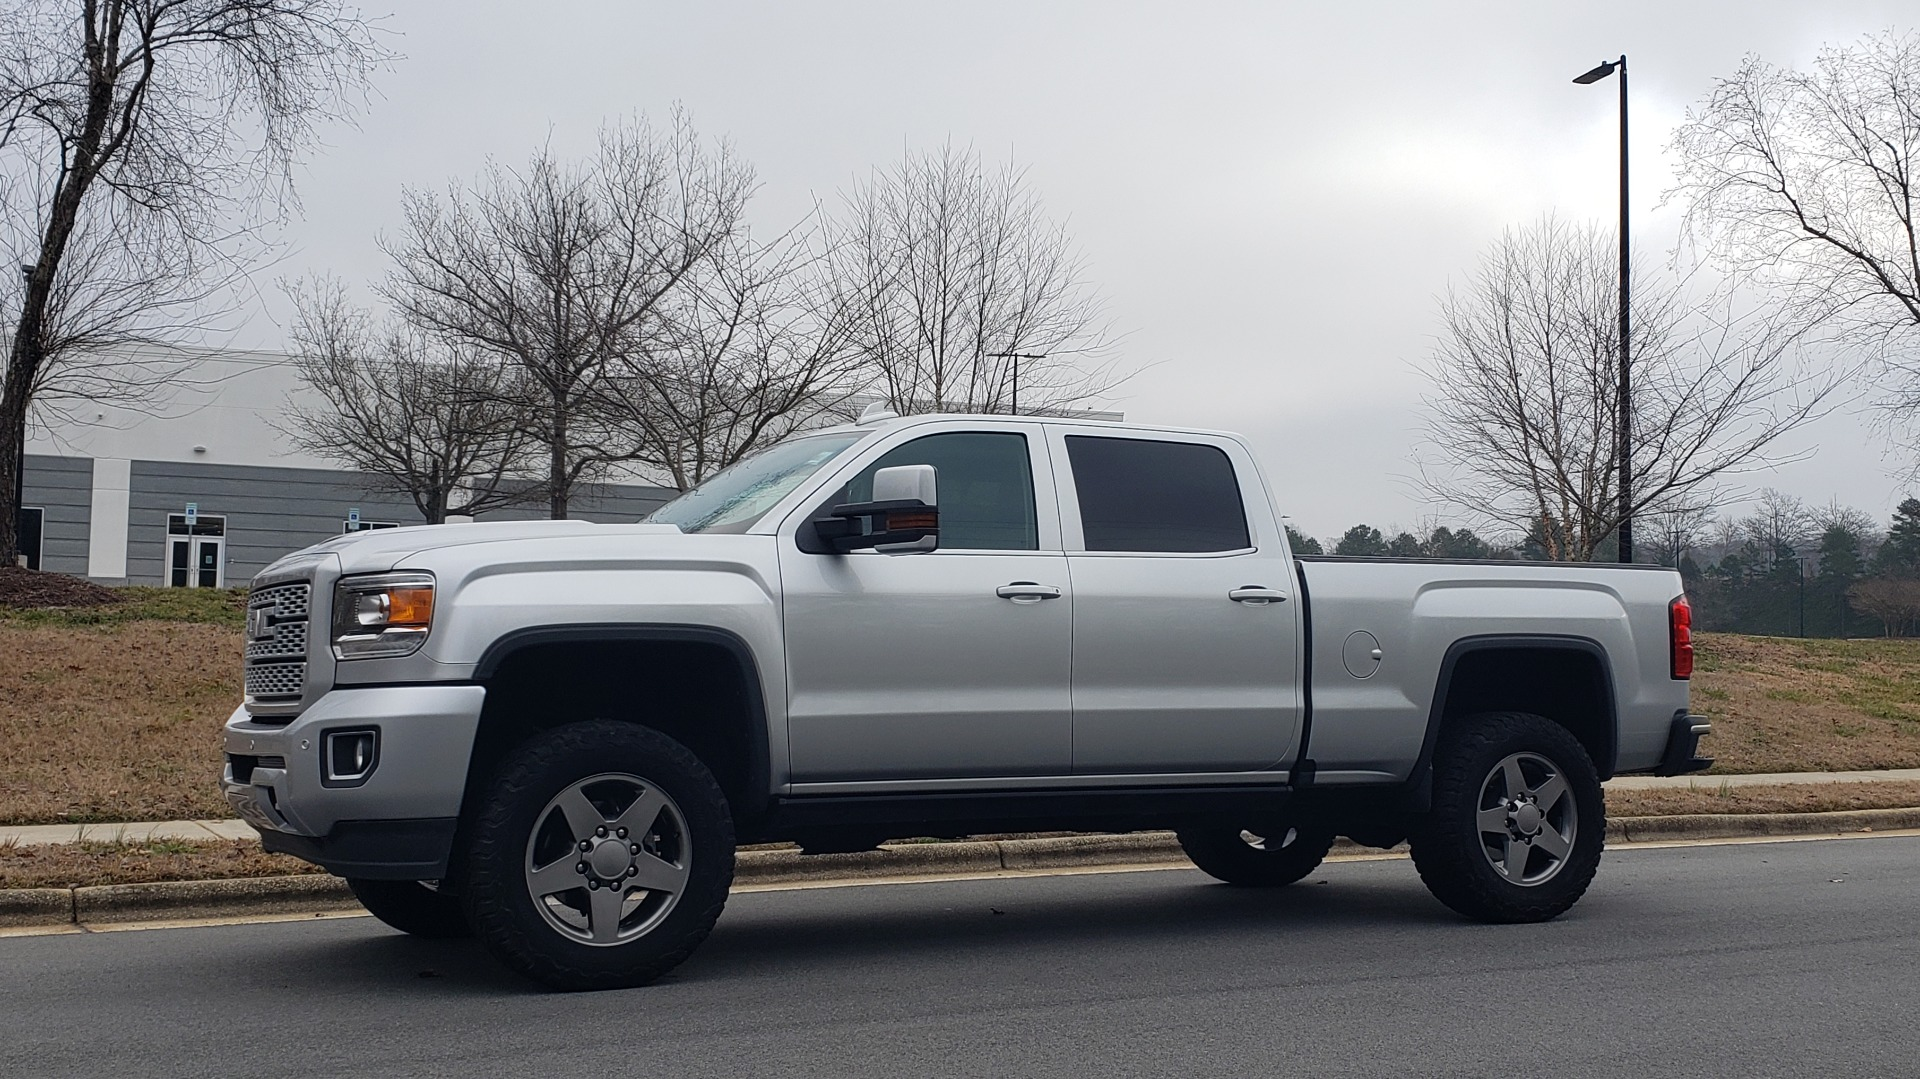 Used 2018 GMC SIERRA 2500HD DENALI 4X4 CREWCAB / 6.6L DURAMAX PLUS / NAV / SUNROOF / REARVIEW for sale $61,999 at Formula Imports in Charlotte NC 28227 2